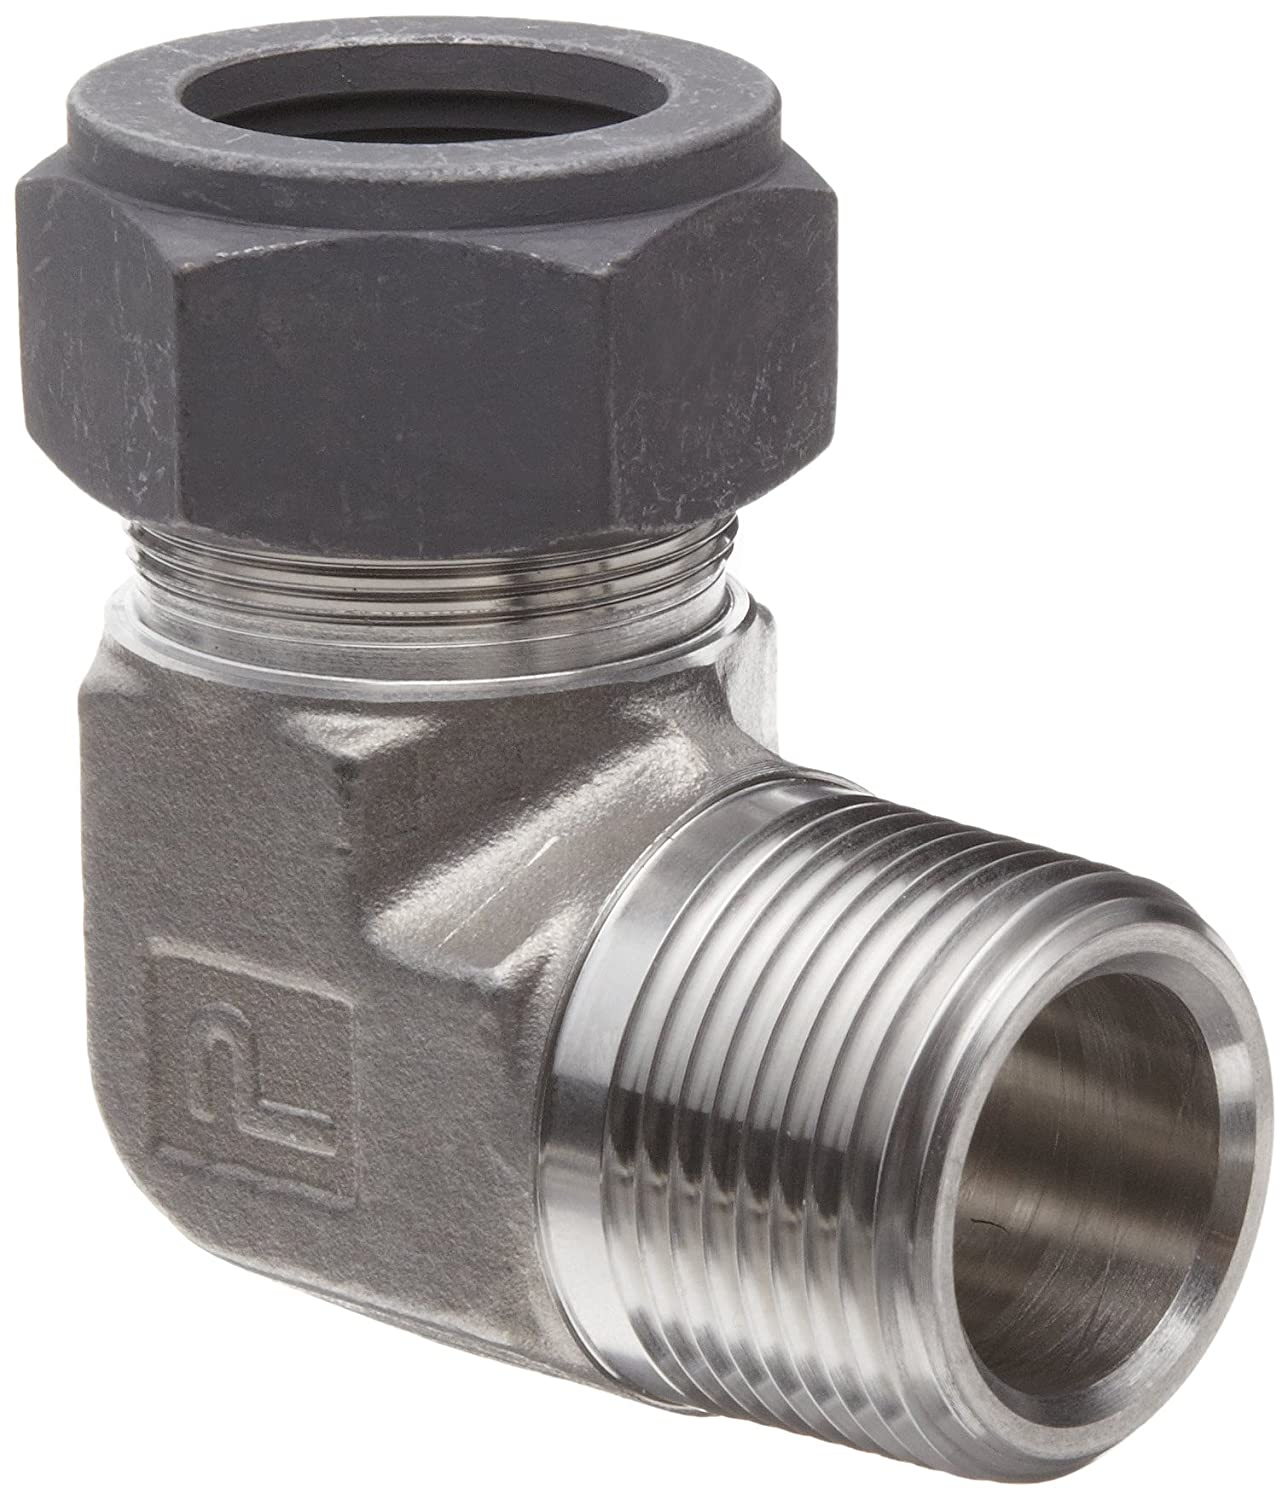 Back Ferrule for use with Inch Tubing Parker Instrumentation Tube Fitting Accessory